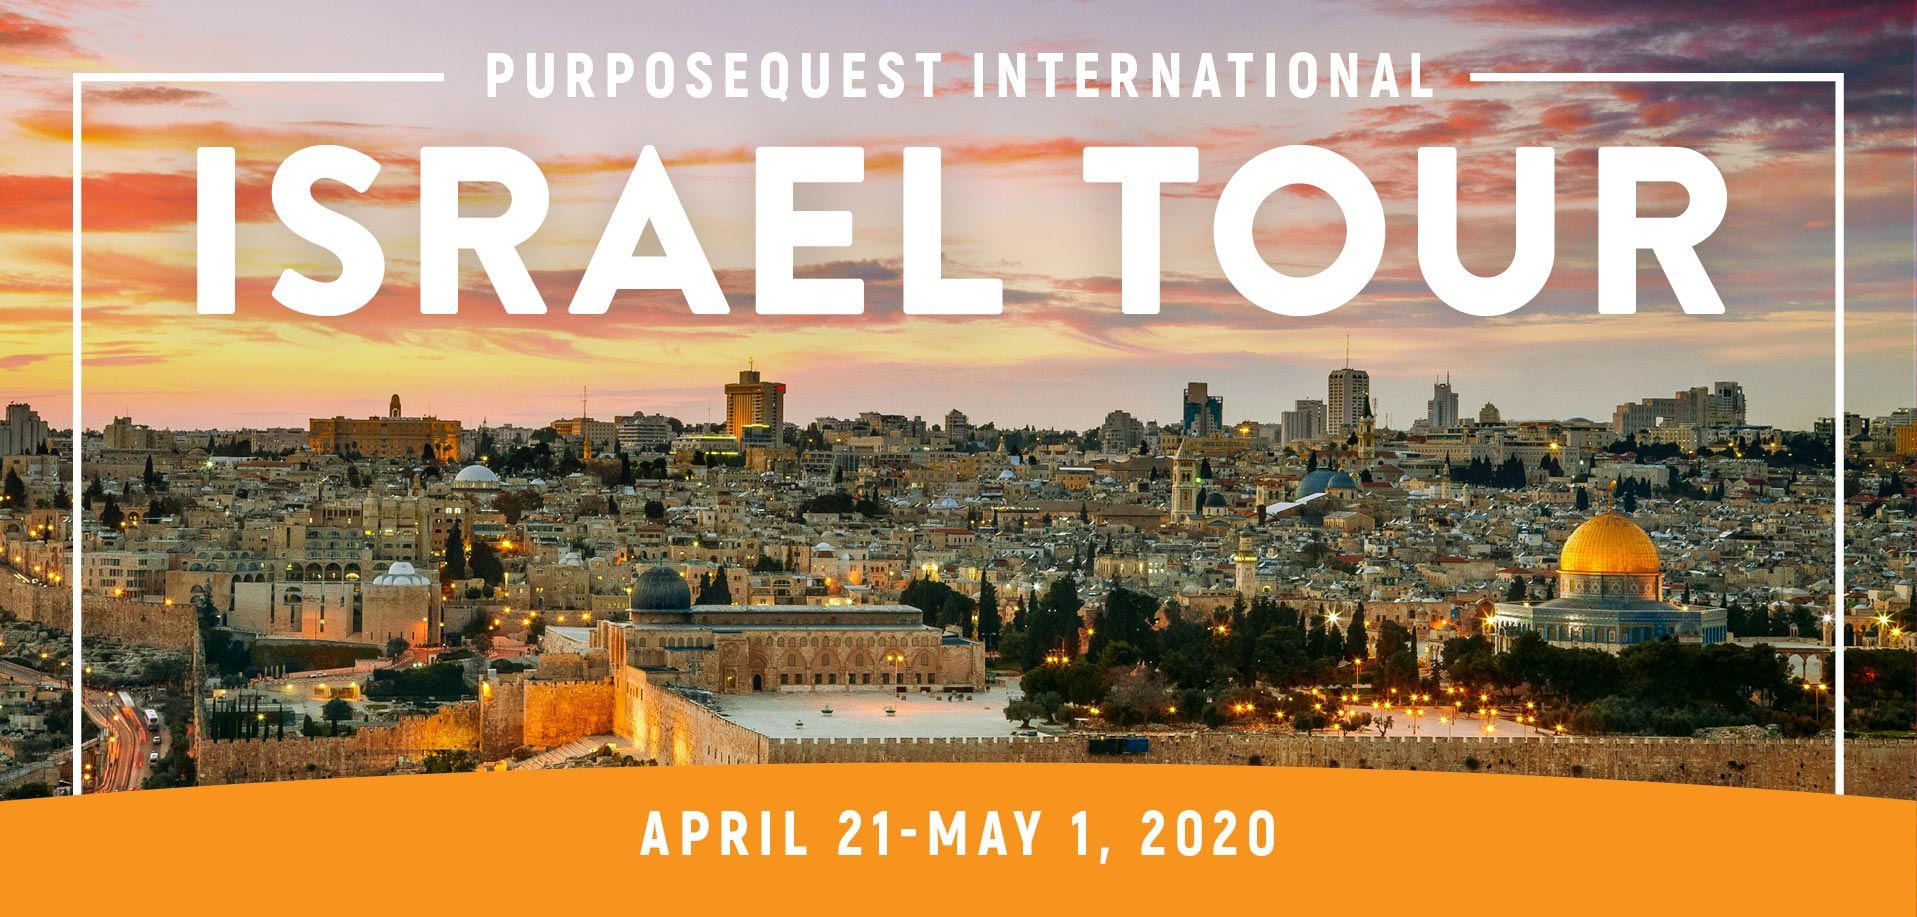 Take a Christian TourWX with Purpose Quest International - Christian Tour to Israel - April 21 - May 1, 2020